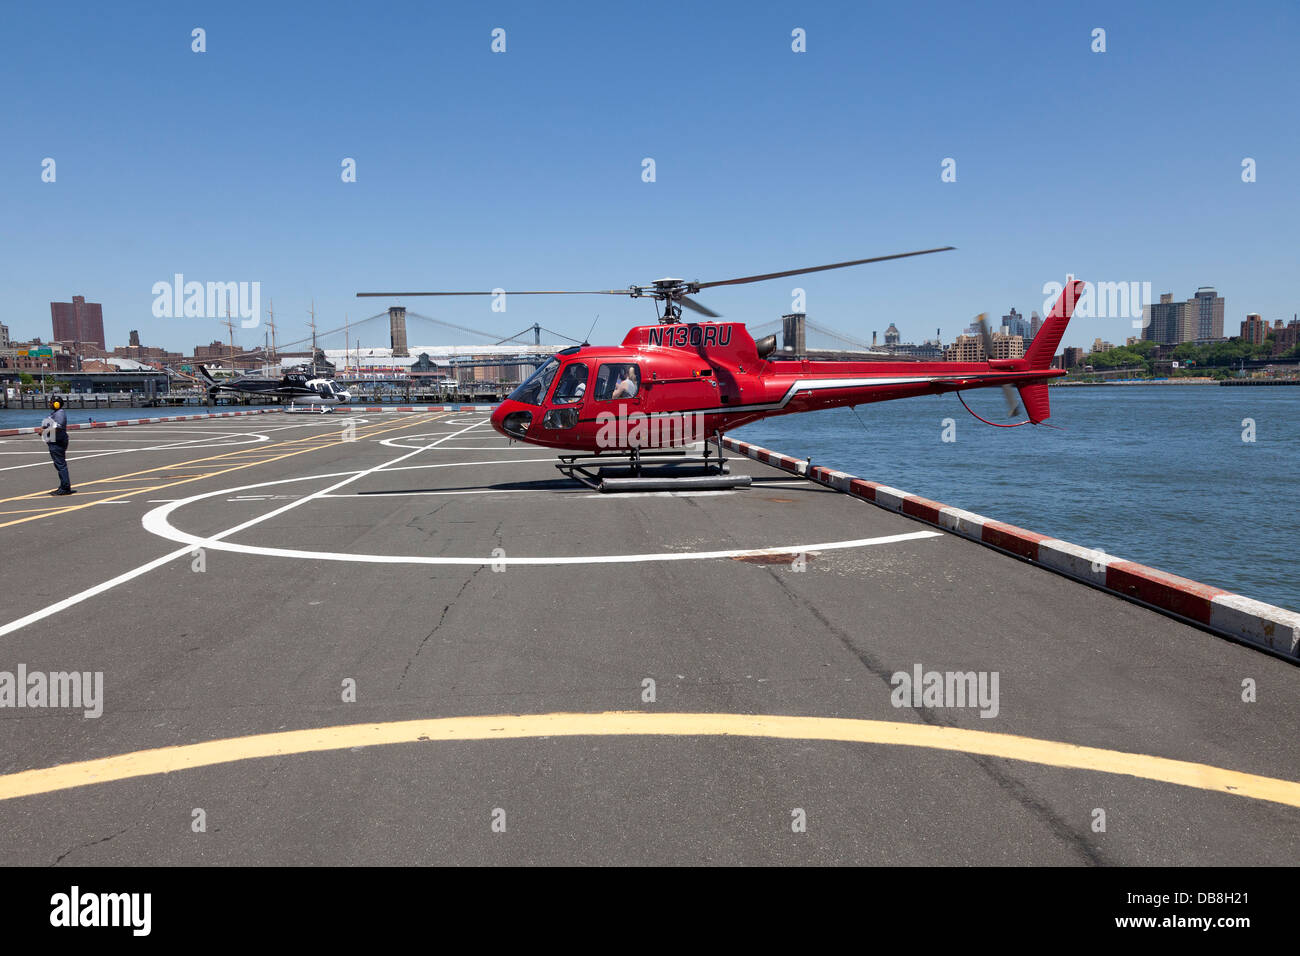 Helicopter at Downtown Manhattan Heliport, New York City - Stock Image